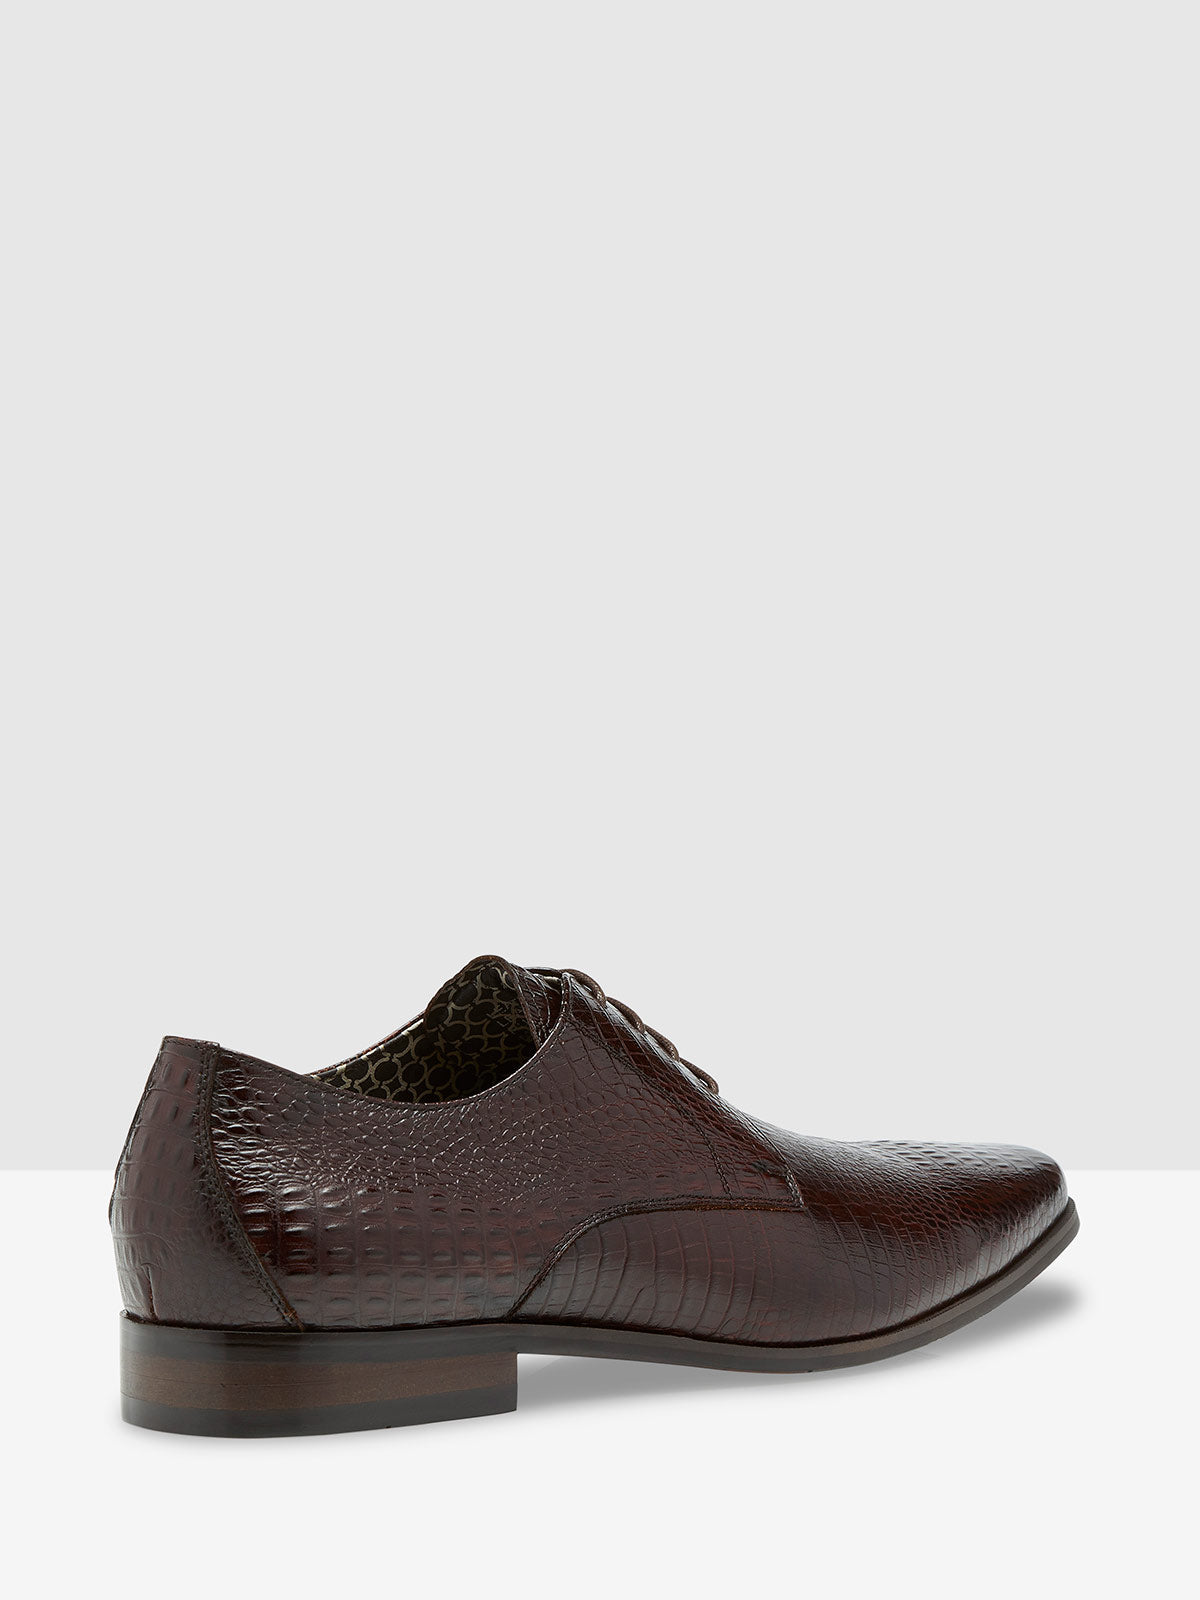 CROC DARBY DRESS SHOE SADDLE